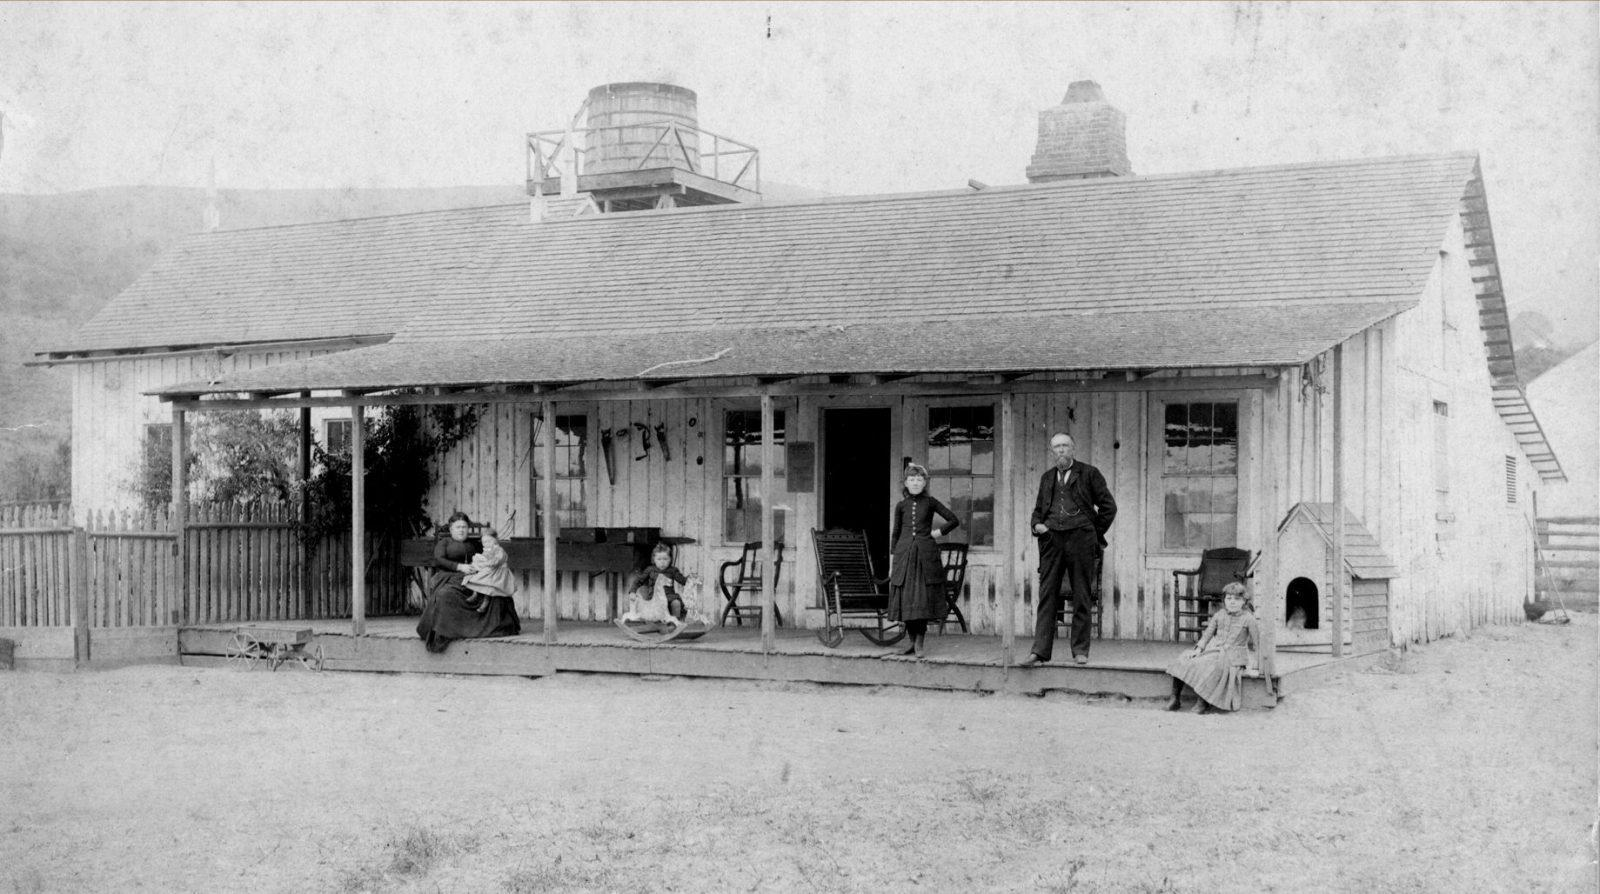 The Homestead, c. 1888. Click on the image to see a larger version.